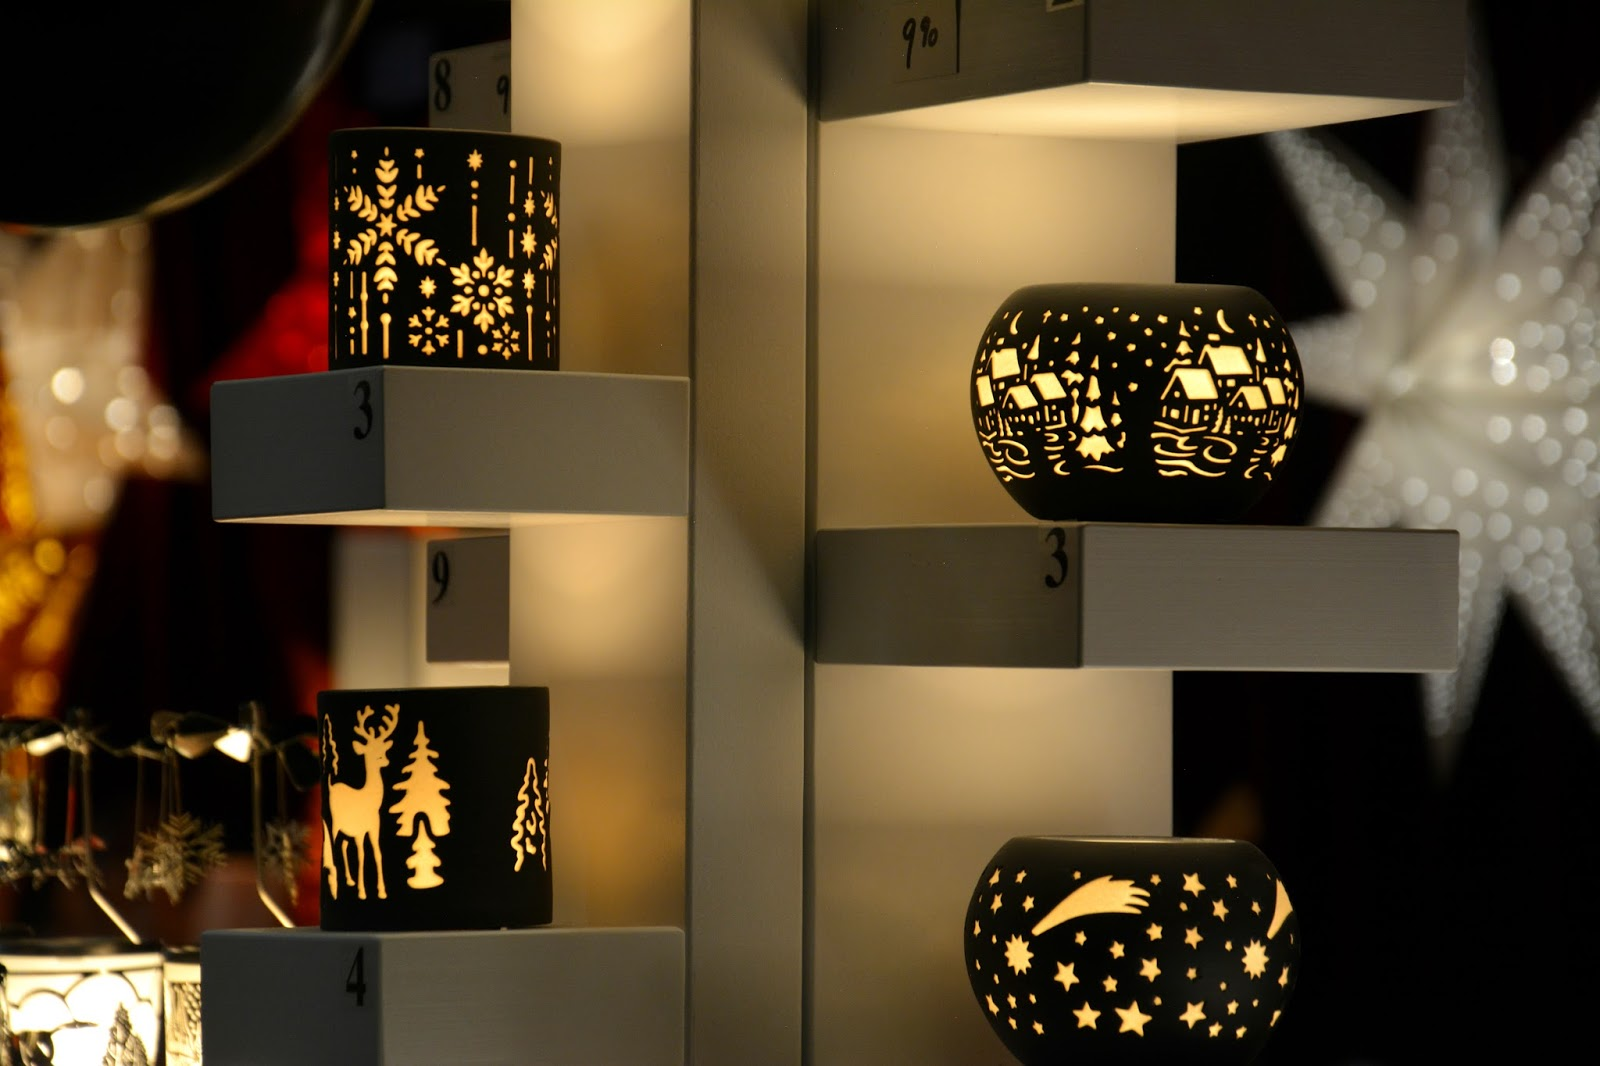 handmade candle lights with festive patterns